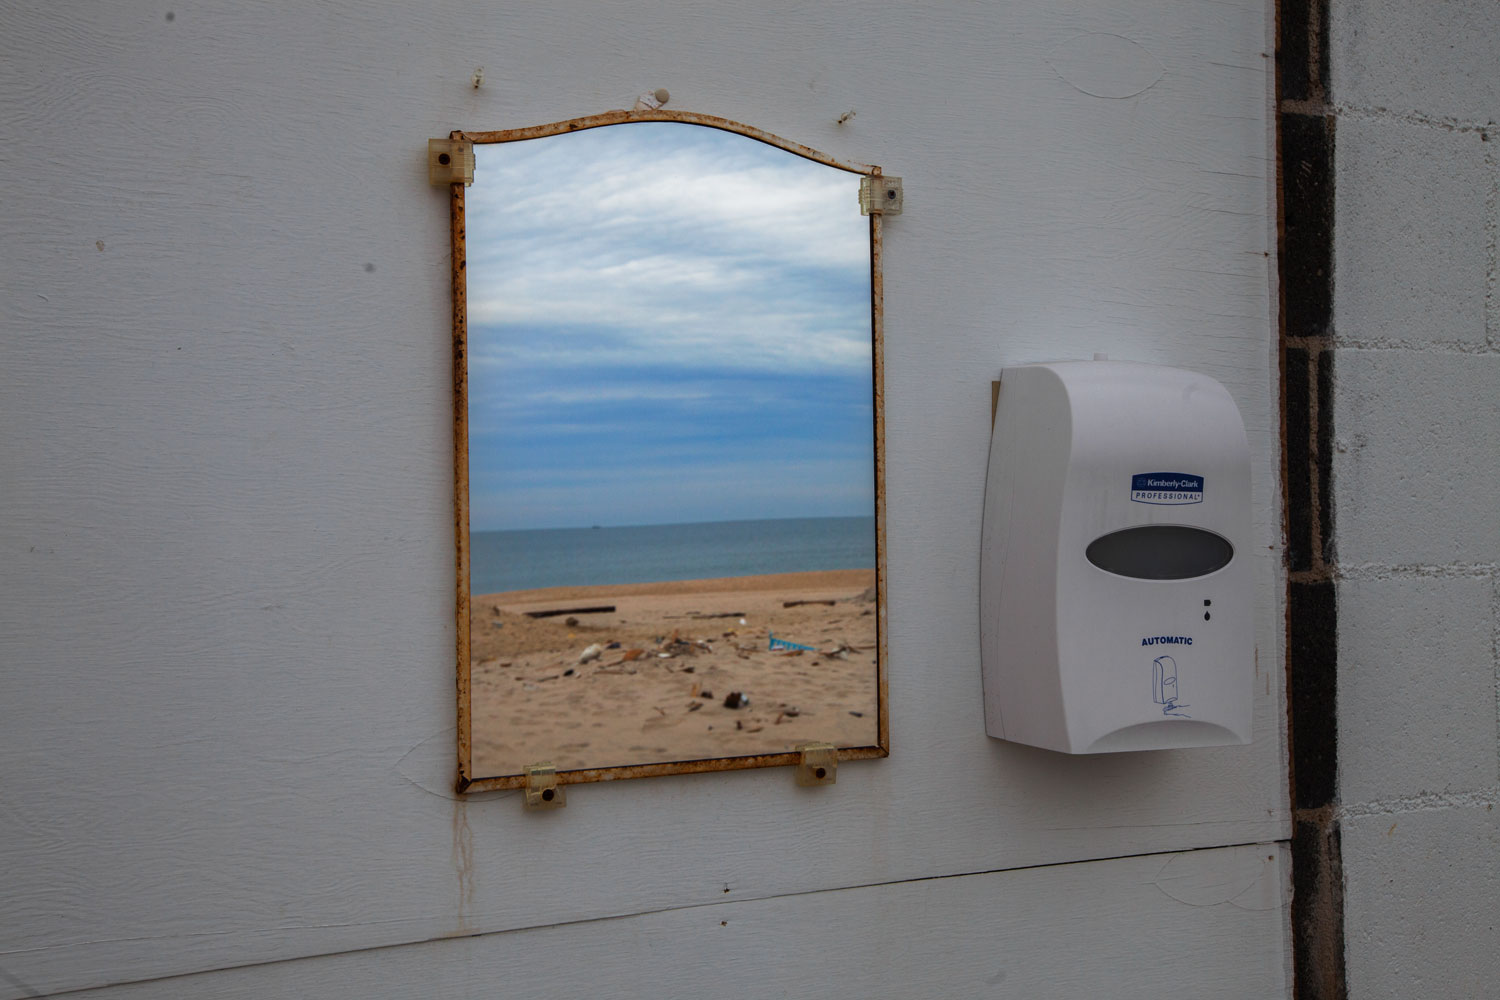 Outdoor Bathroom, Seaside Heights, N.J., Jan. 9, 2013